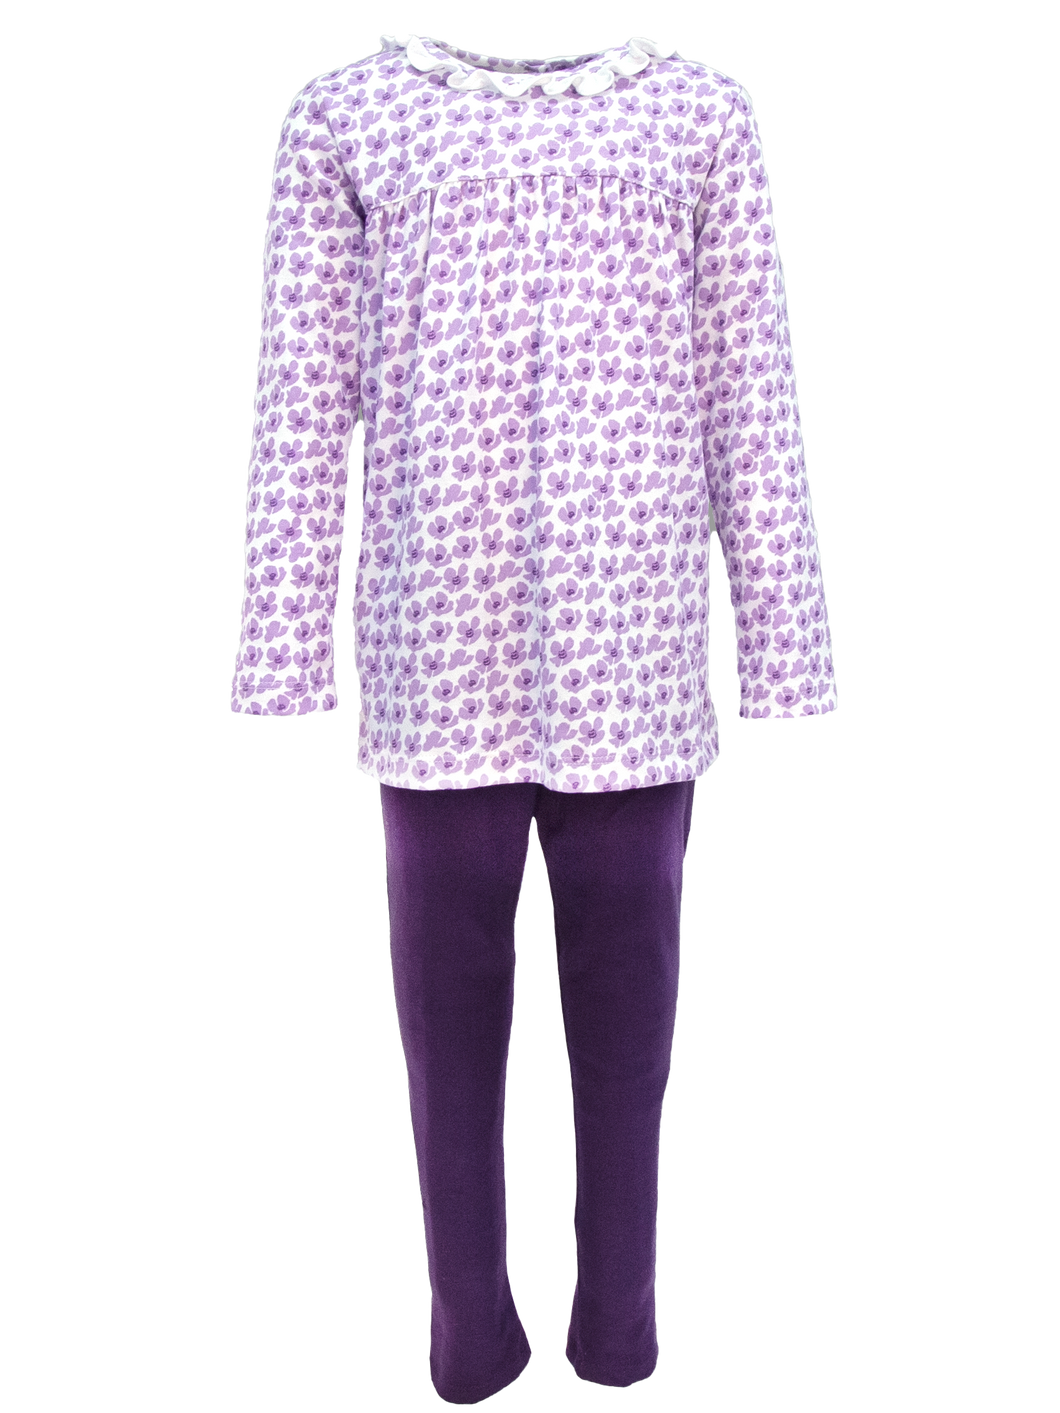 Girls Long Sleeve Tunic Top with leggings Falling Flowers